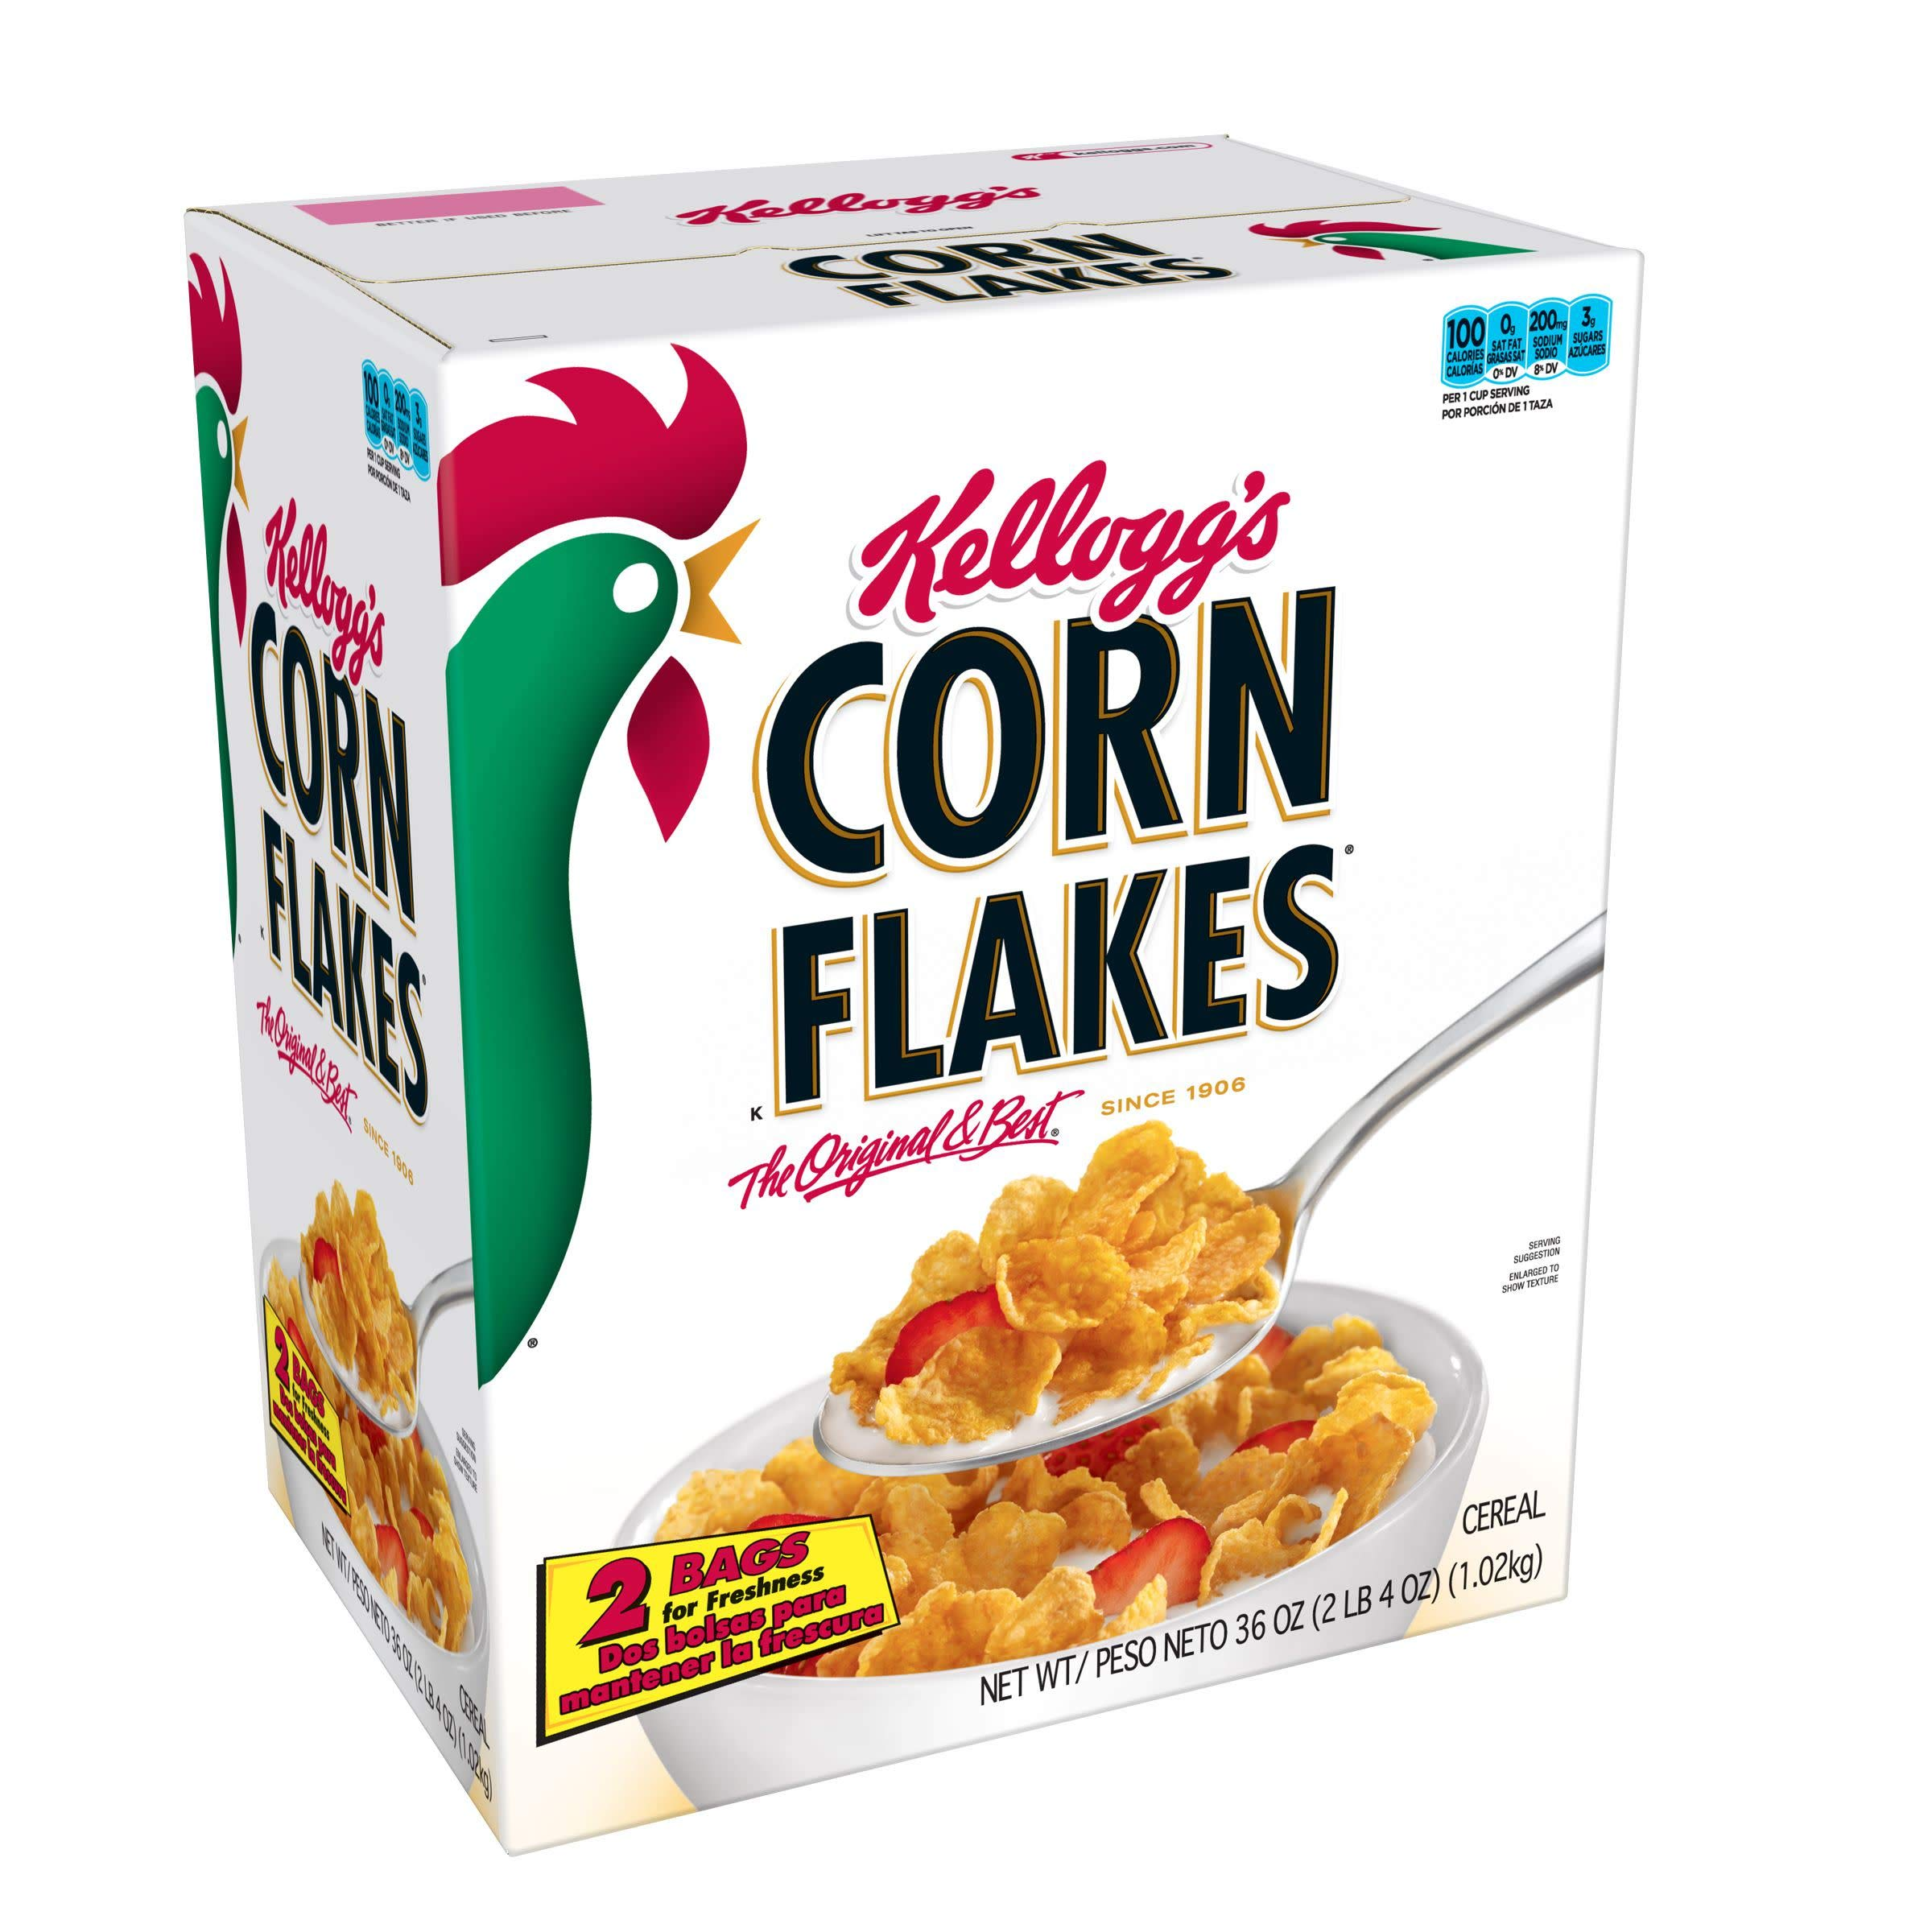 Kellogg's Corn Flakes, Breakfast Cereal, Fat-Free, Bulk Size, 216 oz (Pack of 6, 36 oz Boxes) by Kellogg's (Image #1)